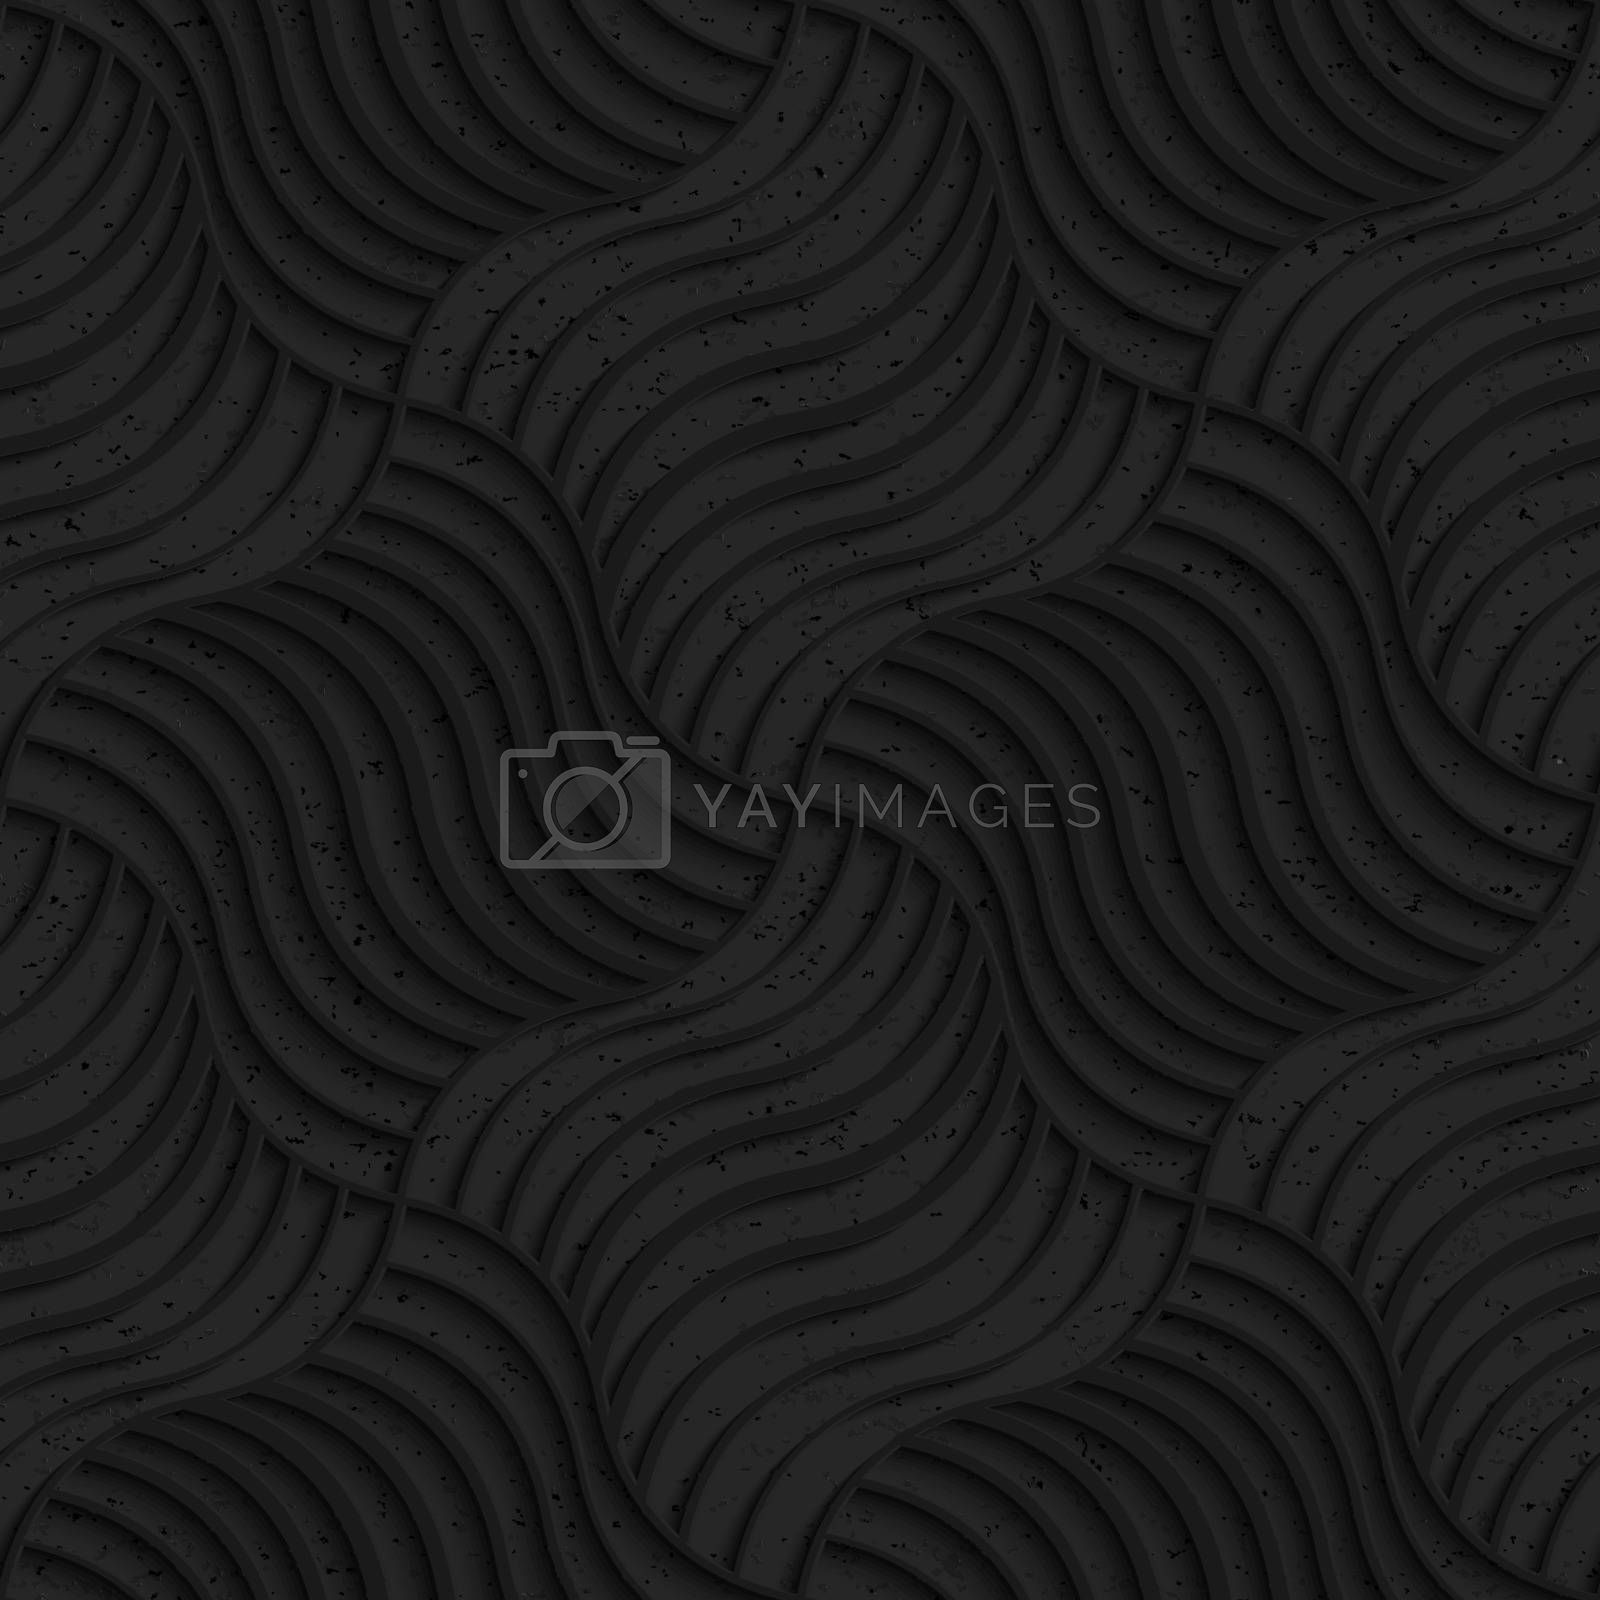 Seamless geometric background. Pattern with 3D texture and realistic shadow.Textured black plastic striped pillows pin will.